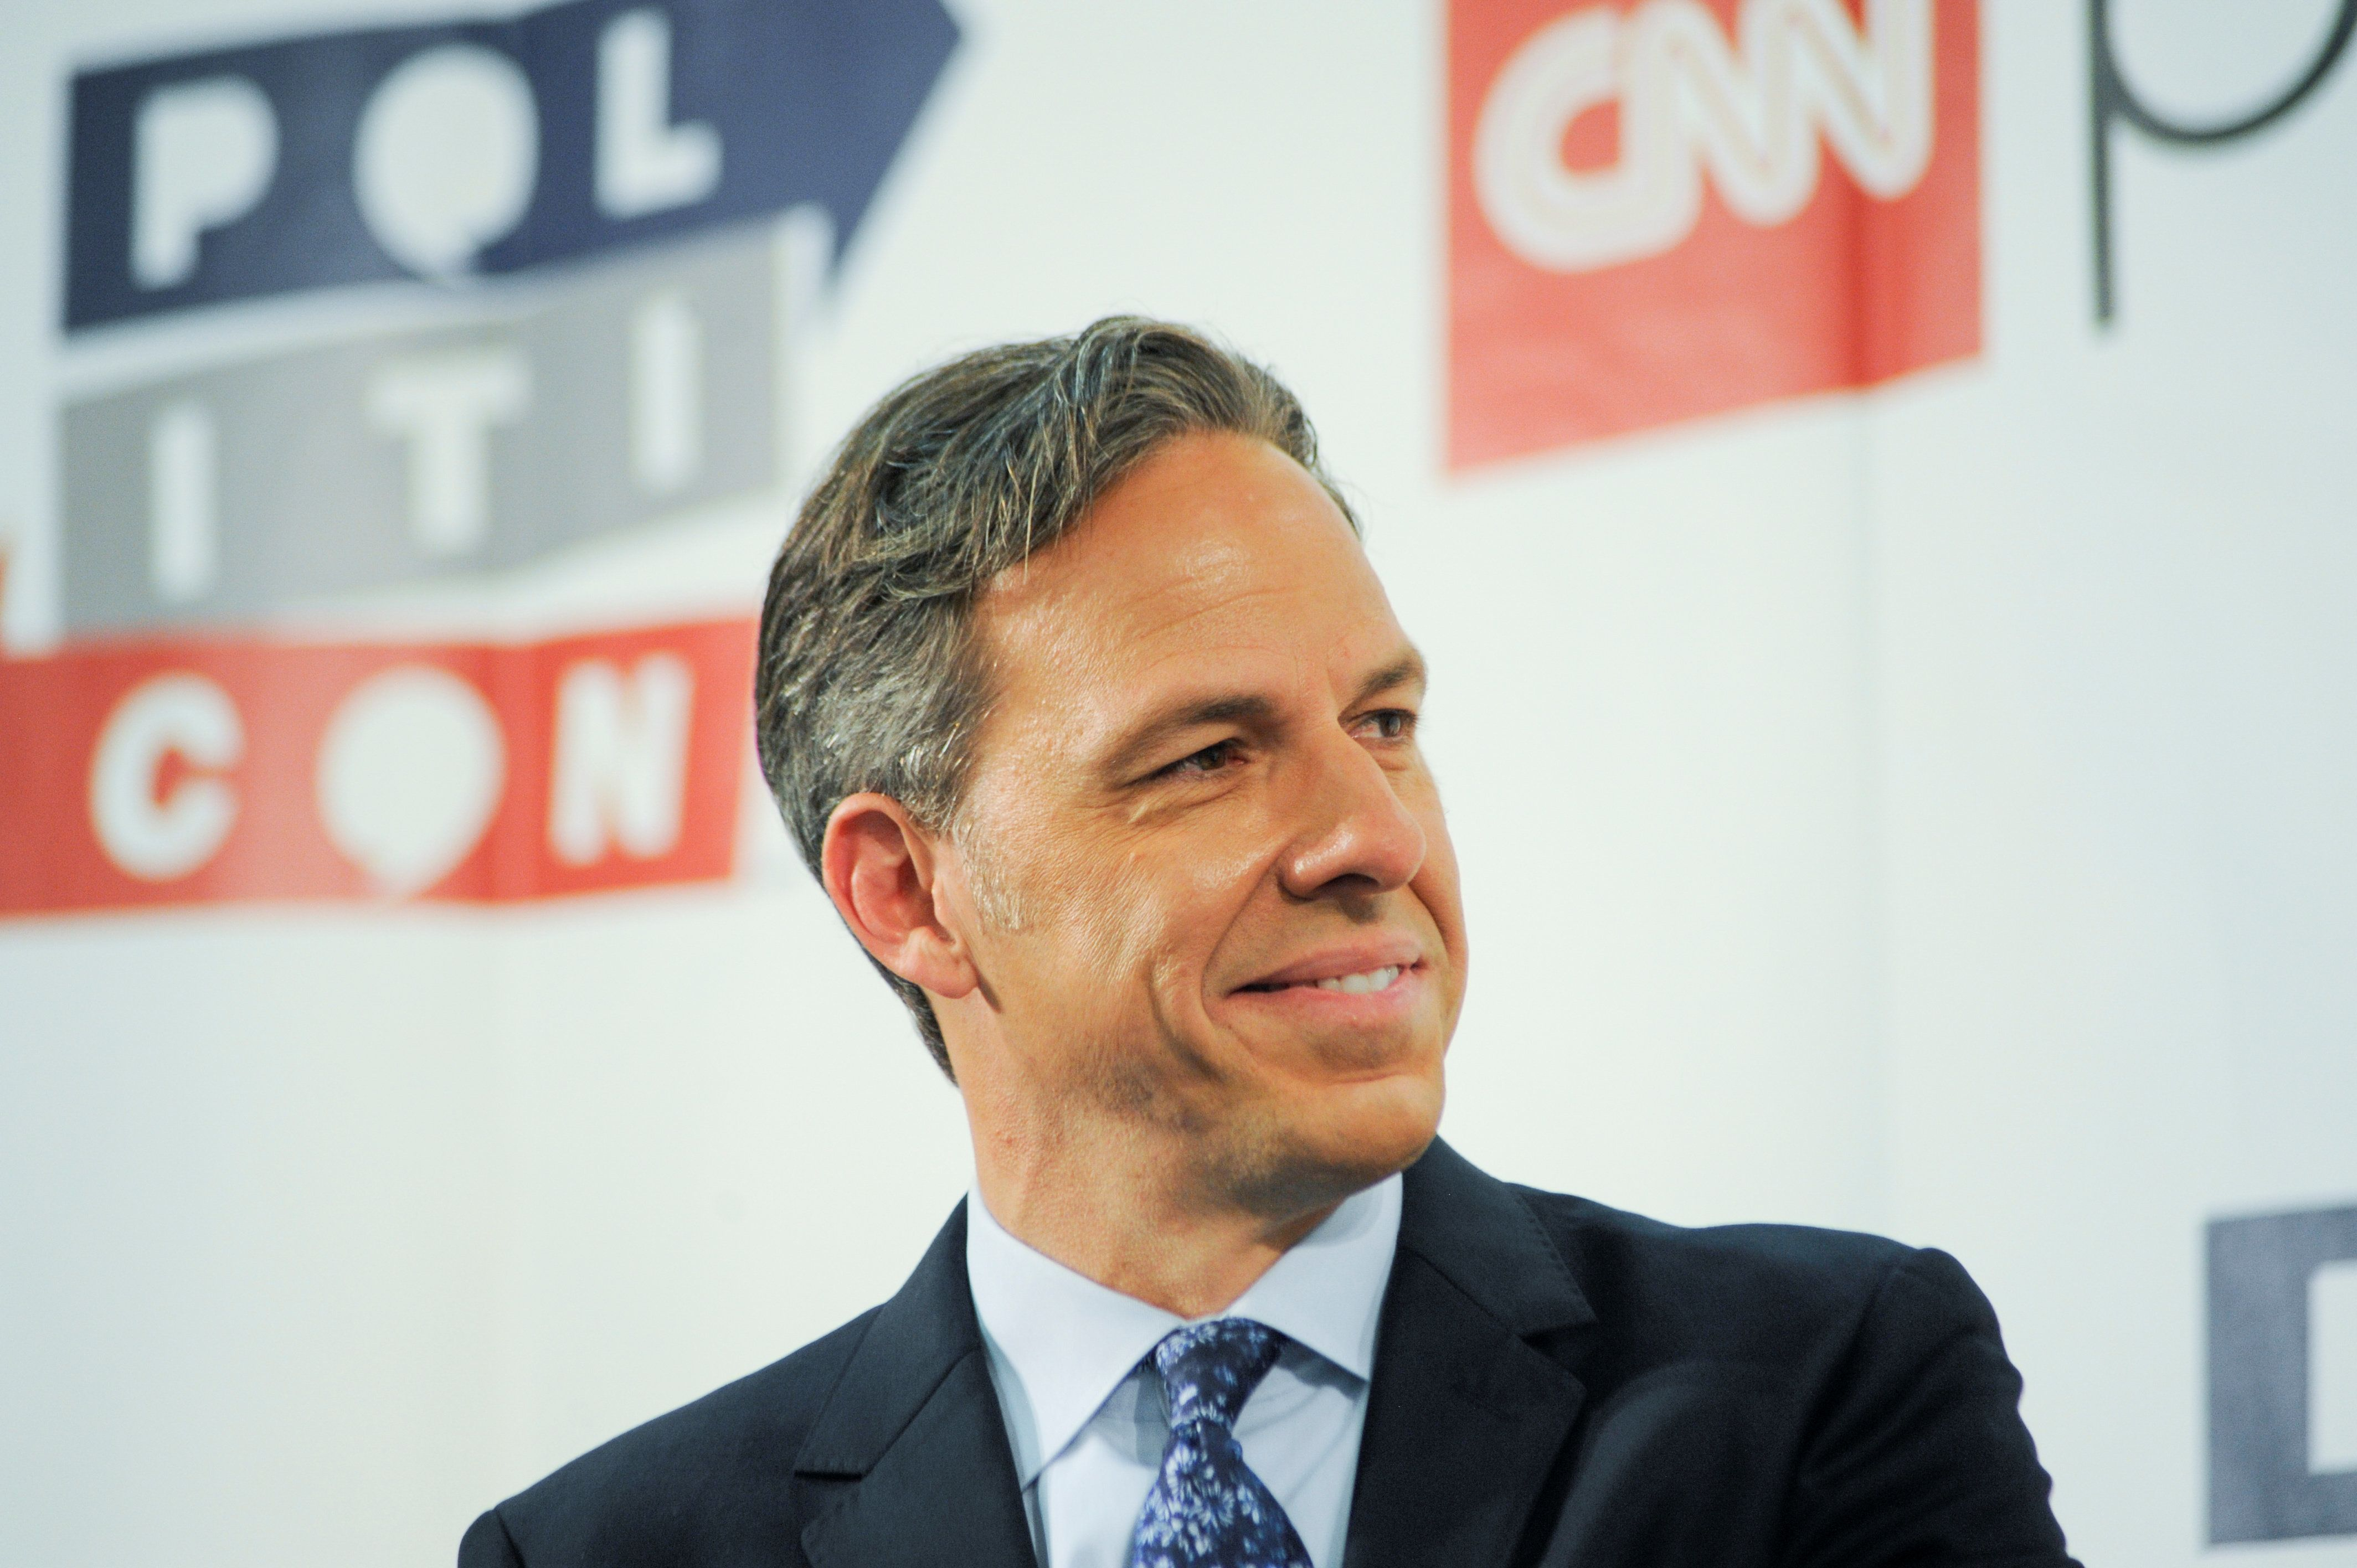 Jake Tapper has another bone to pick with Donald Trump